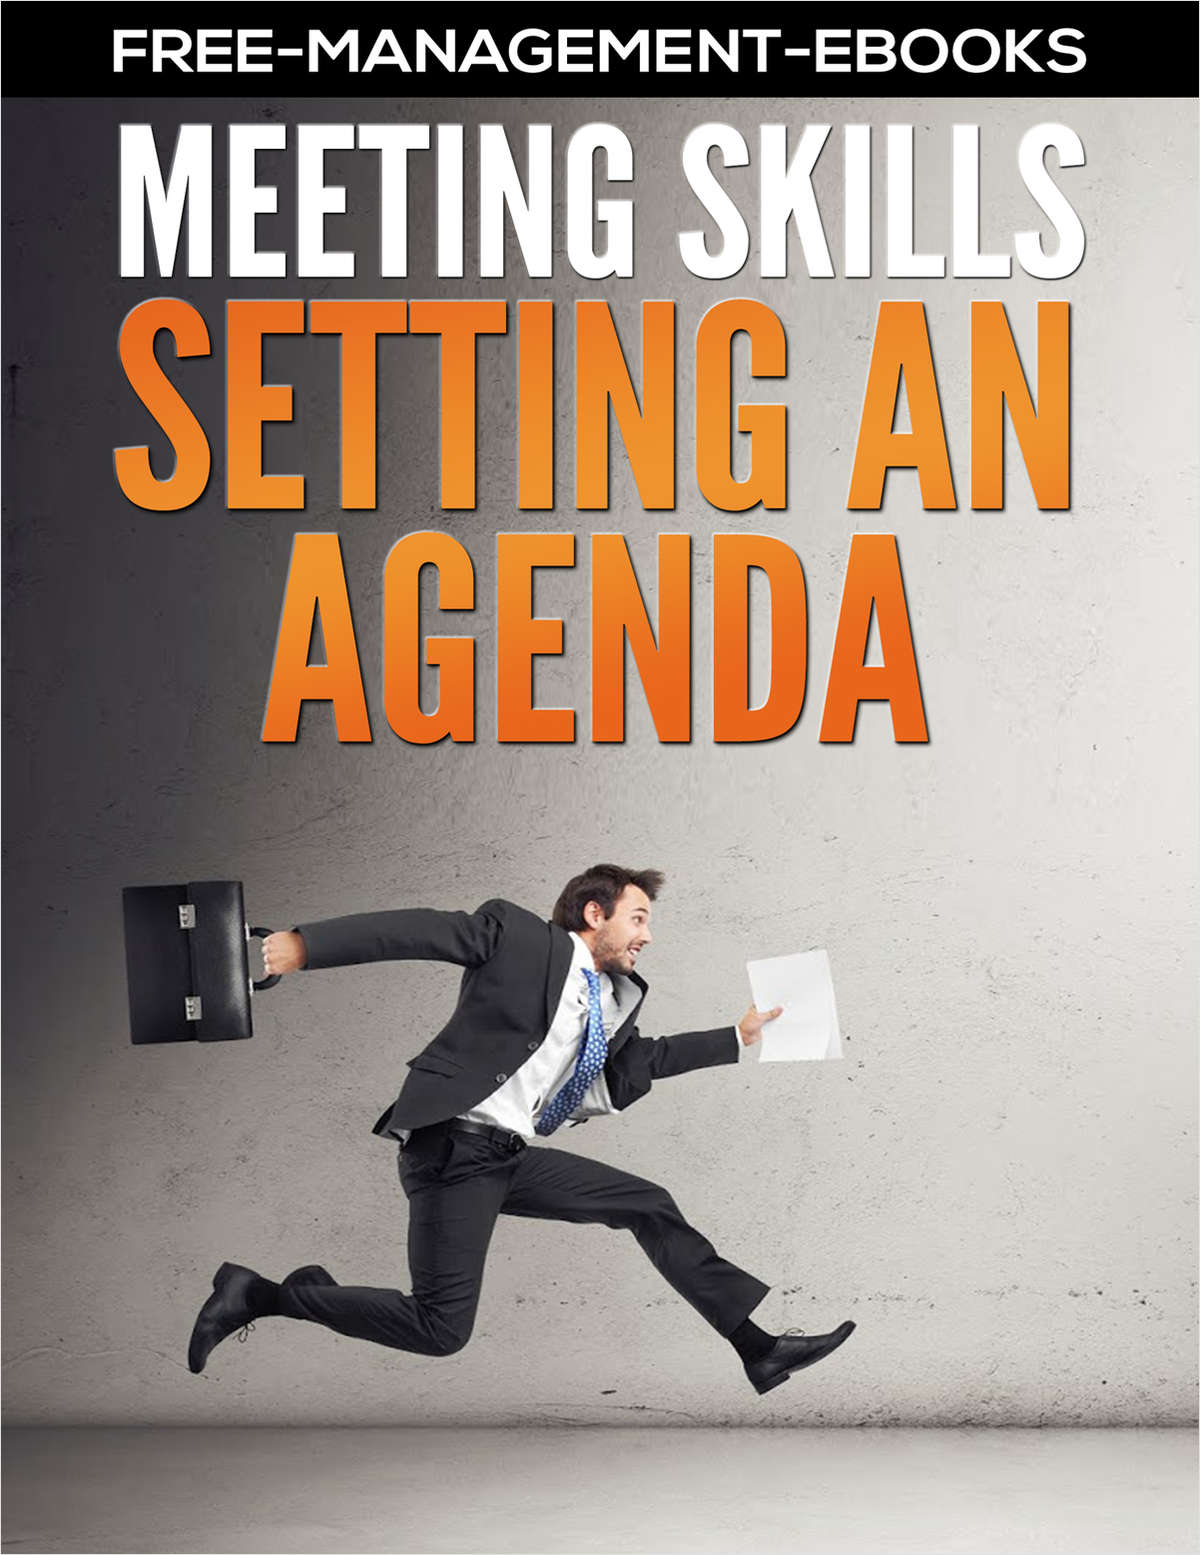 Setting an Agenda -- Developing Your Meeting Skills